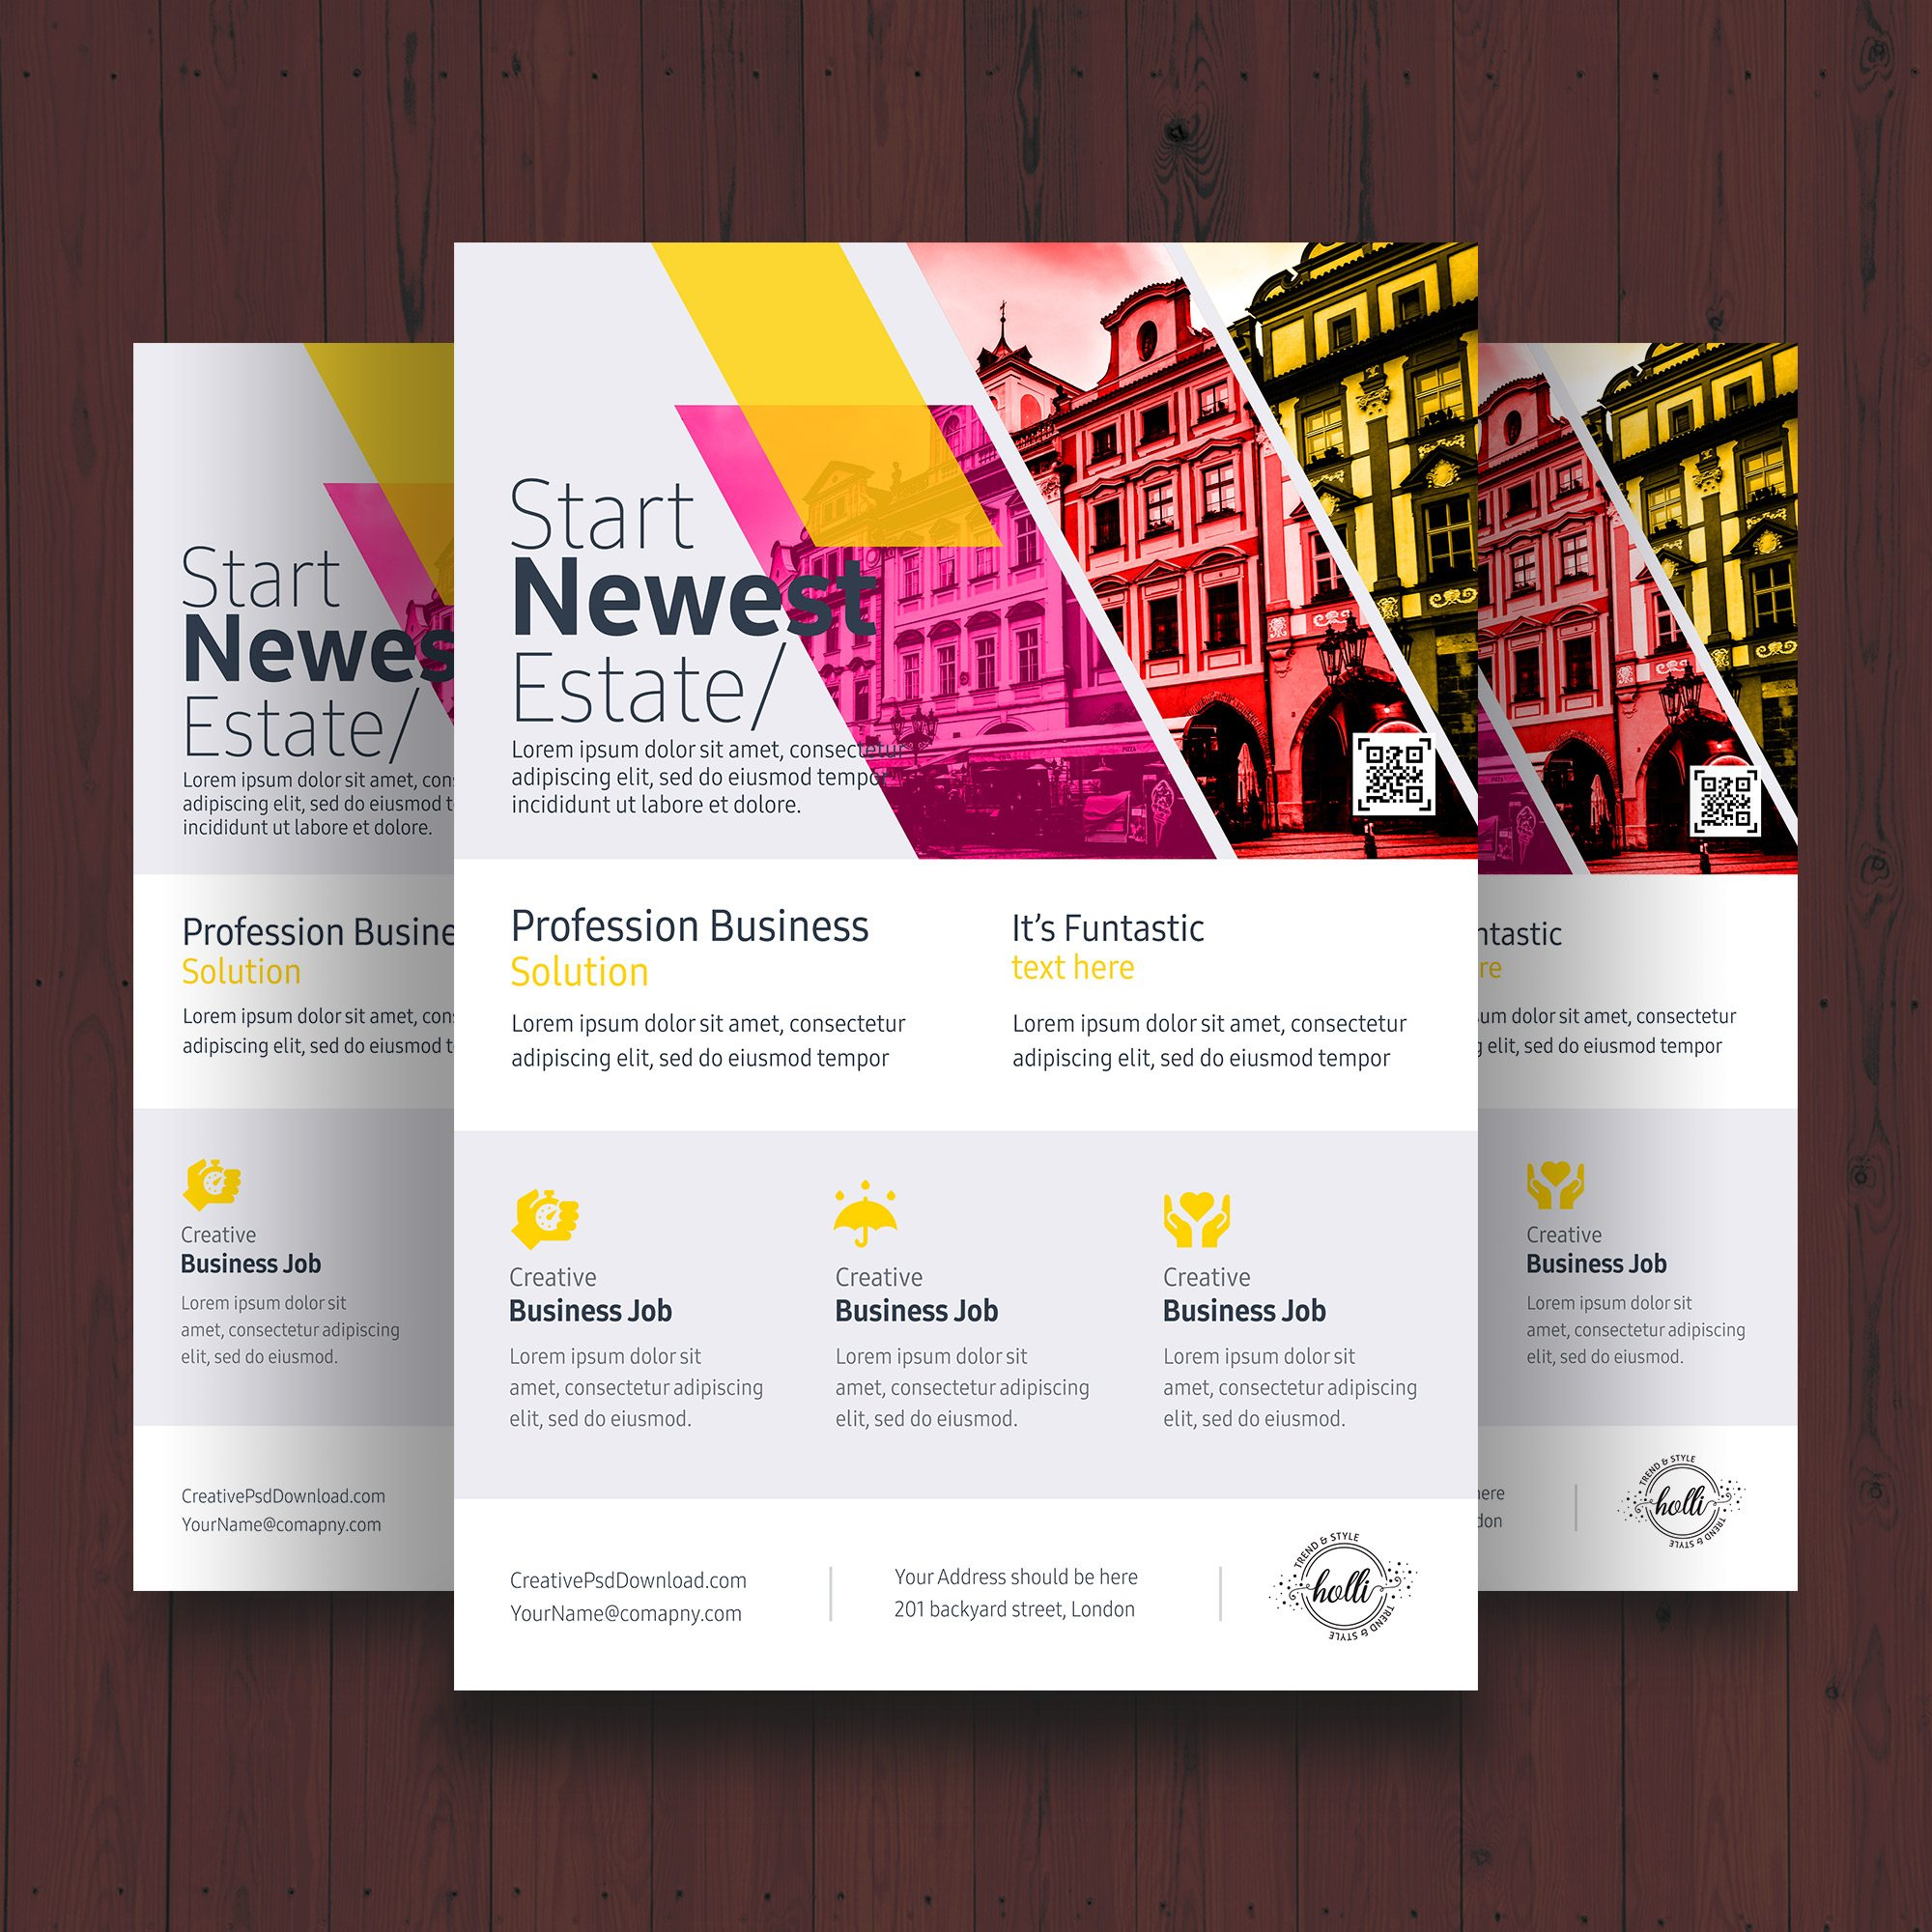 free corporate flyer templates, corporate flyer design free download, flyer design psd free download, business flyer templates psd free download, free photoshop corporate flyer templates, free psd business flyer templates free download, corporate flyer psd, corporate flyer psd free download,Professional Business Flyer PSD Template